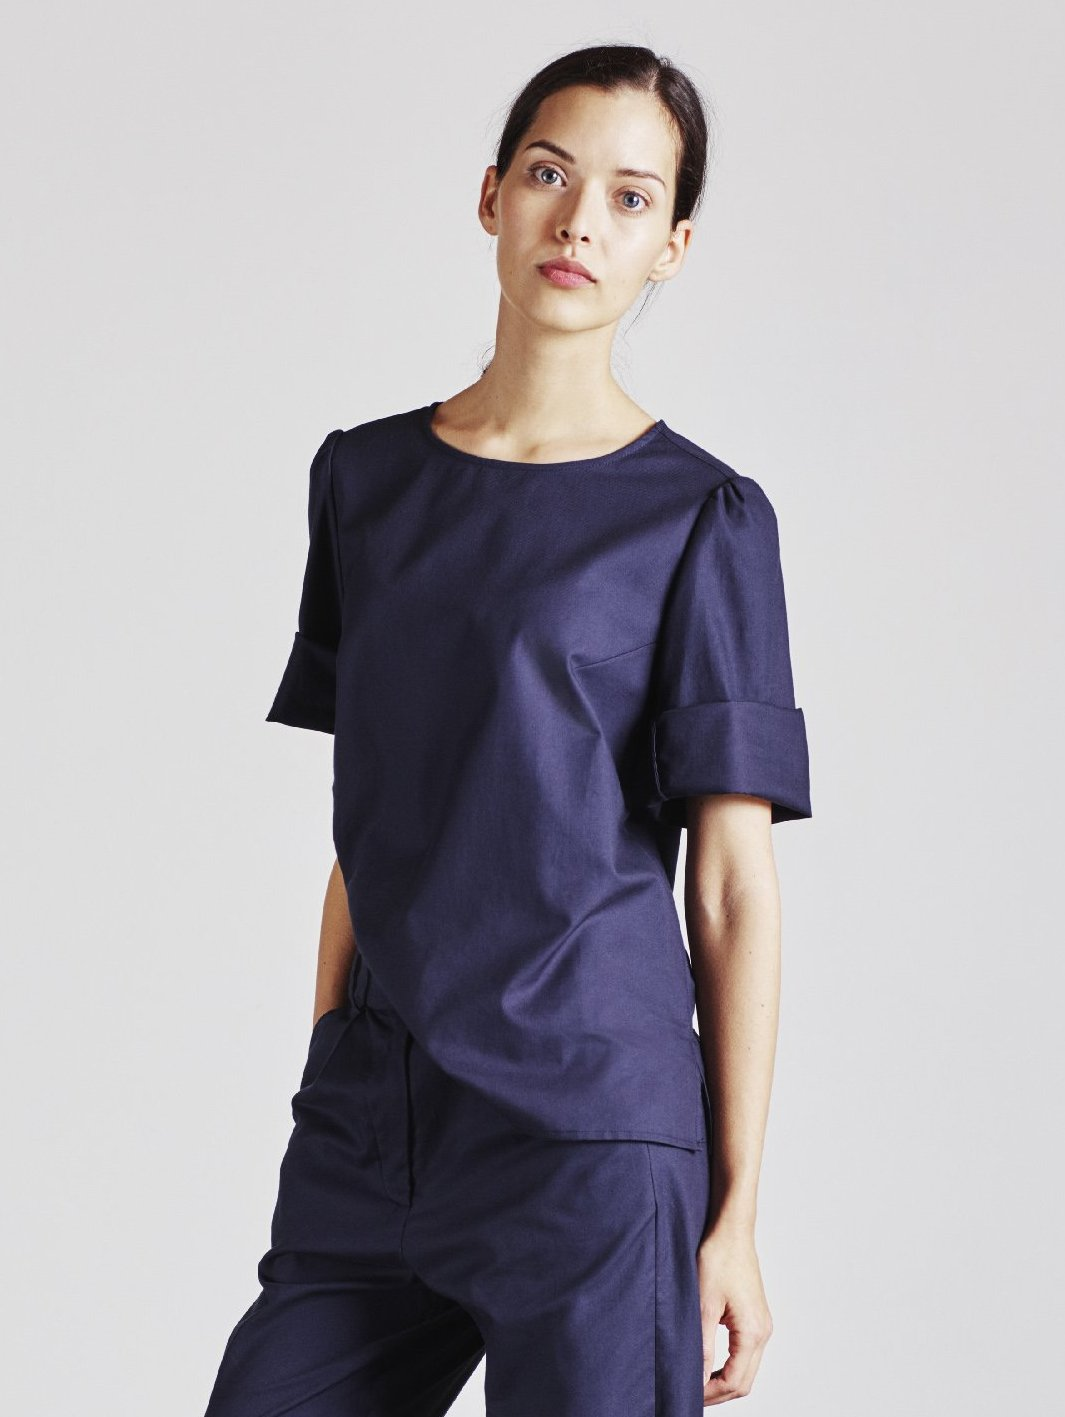 Alice Early Organic Cotton Navy Top